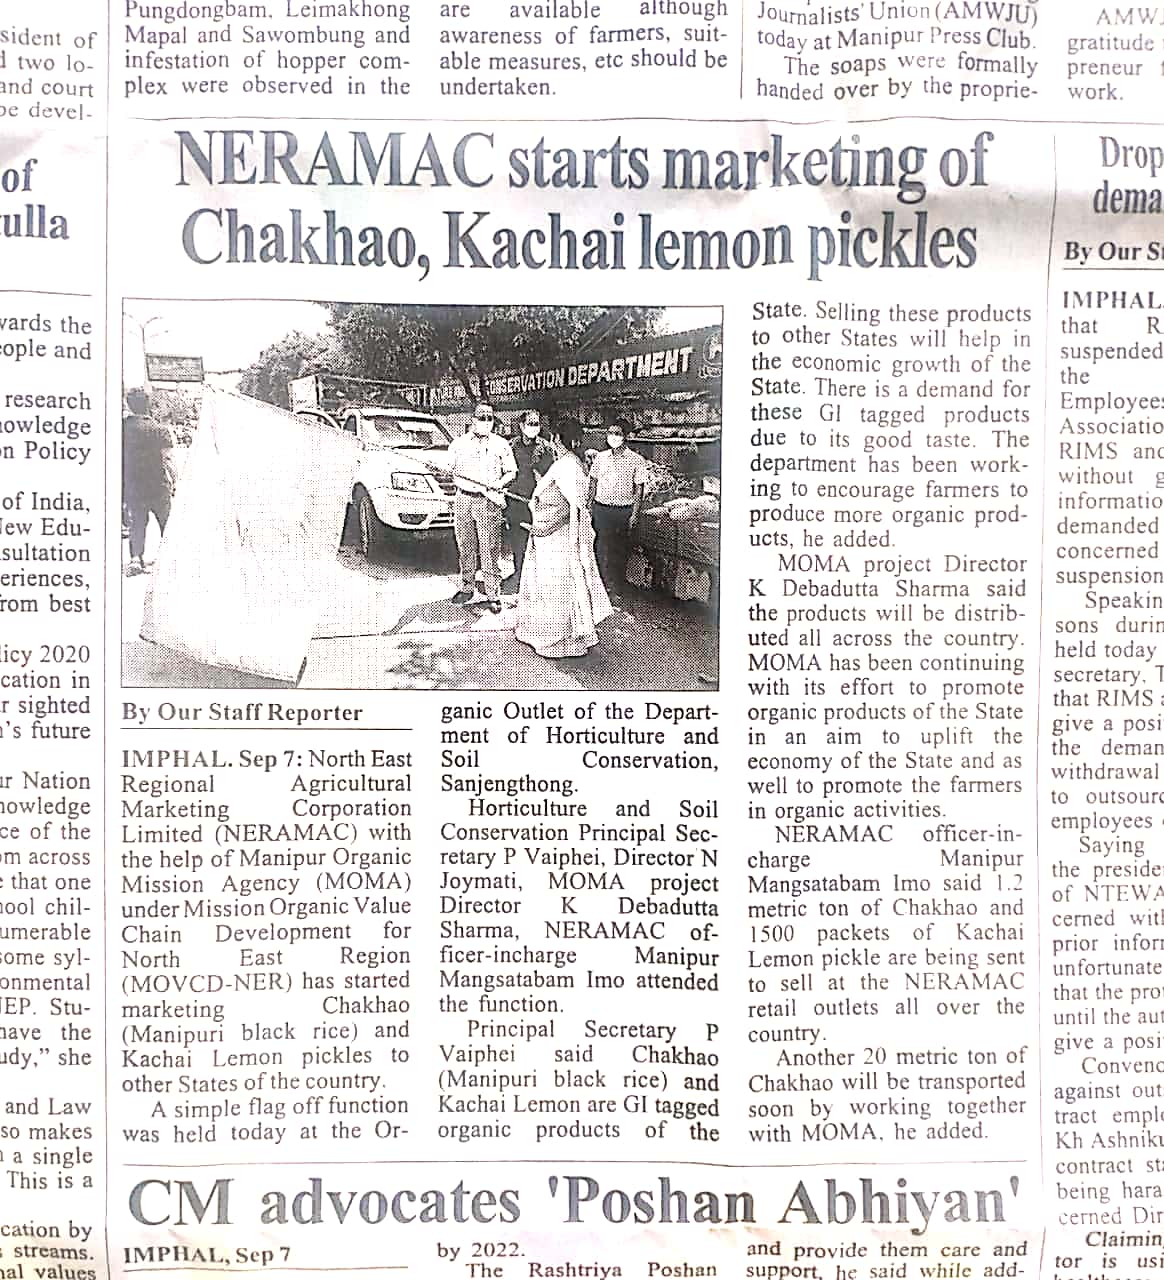 NERAMAC starts marketing of Chakhao & Kachai Lemon (GI product)